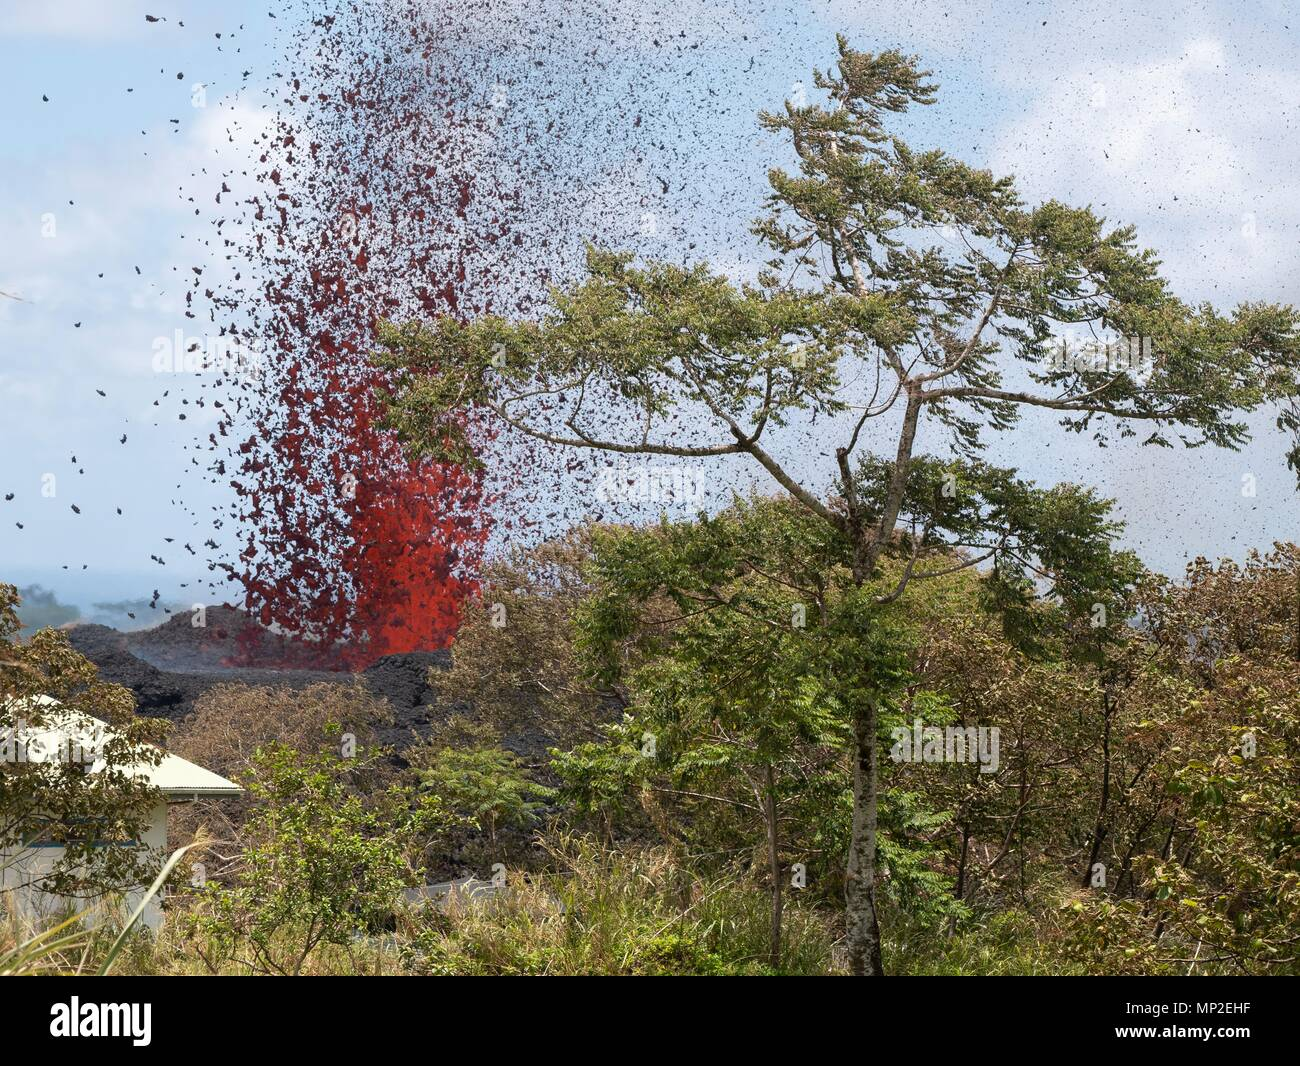 Lava spews out from fissure 17 caused by the eruption of the Kilauea volcano May 18, 2018 in Pahoa, Hawaii. - Stock Image